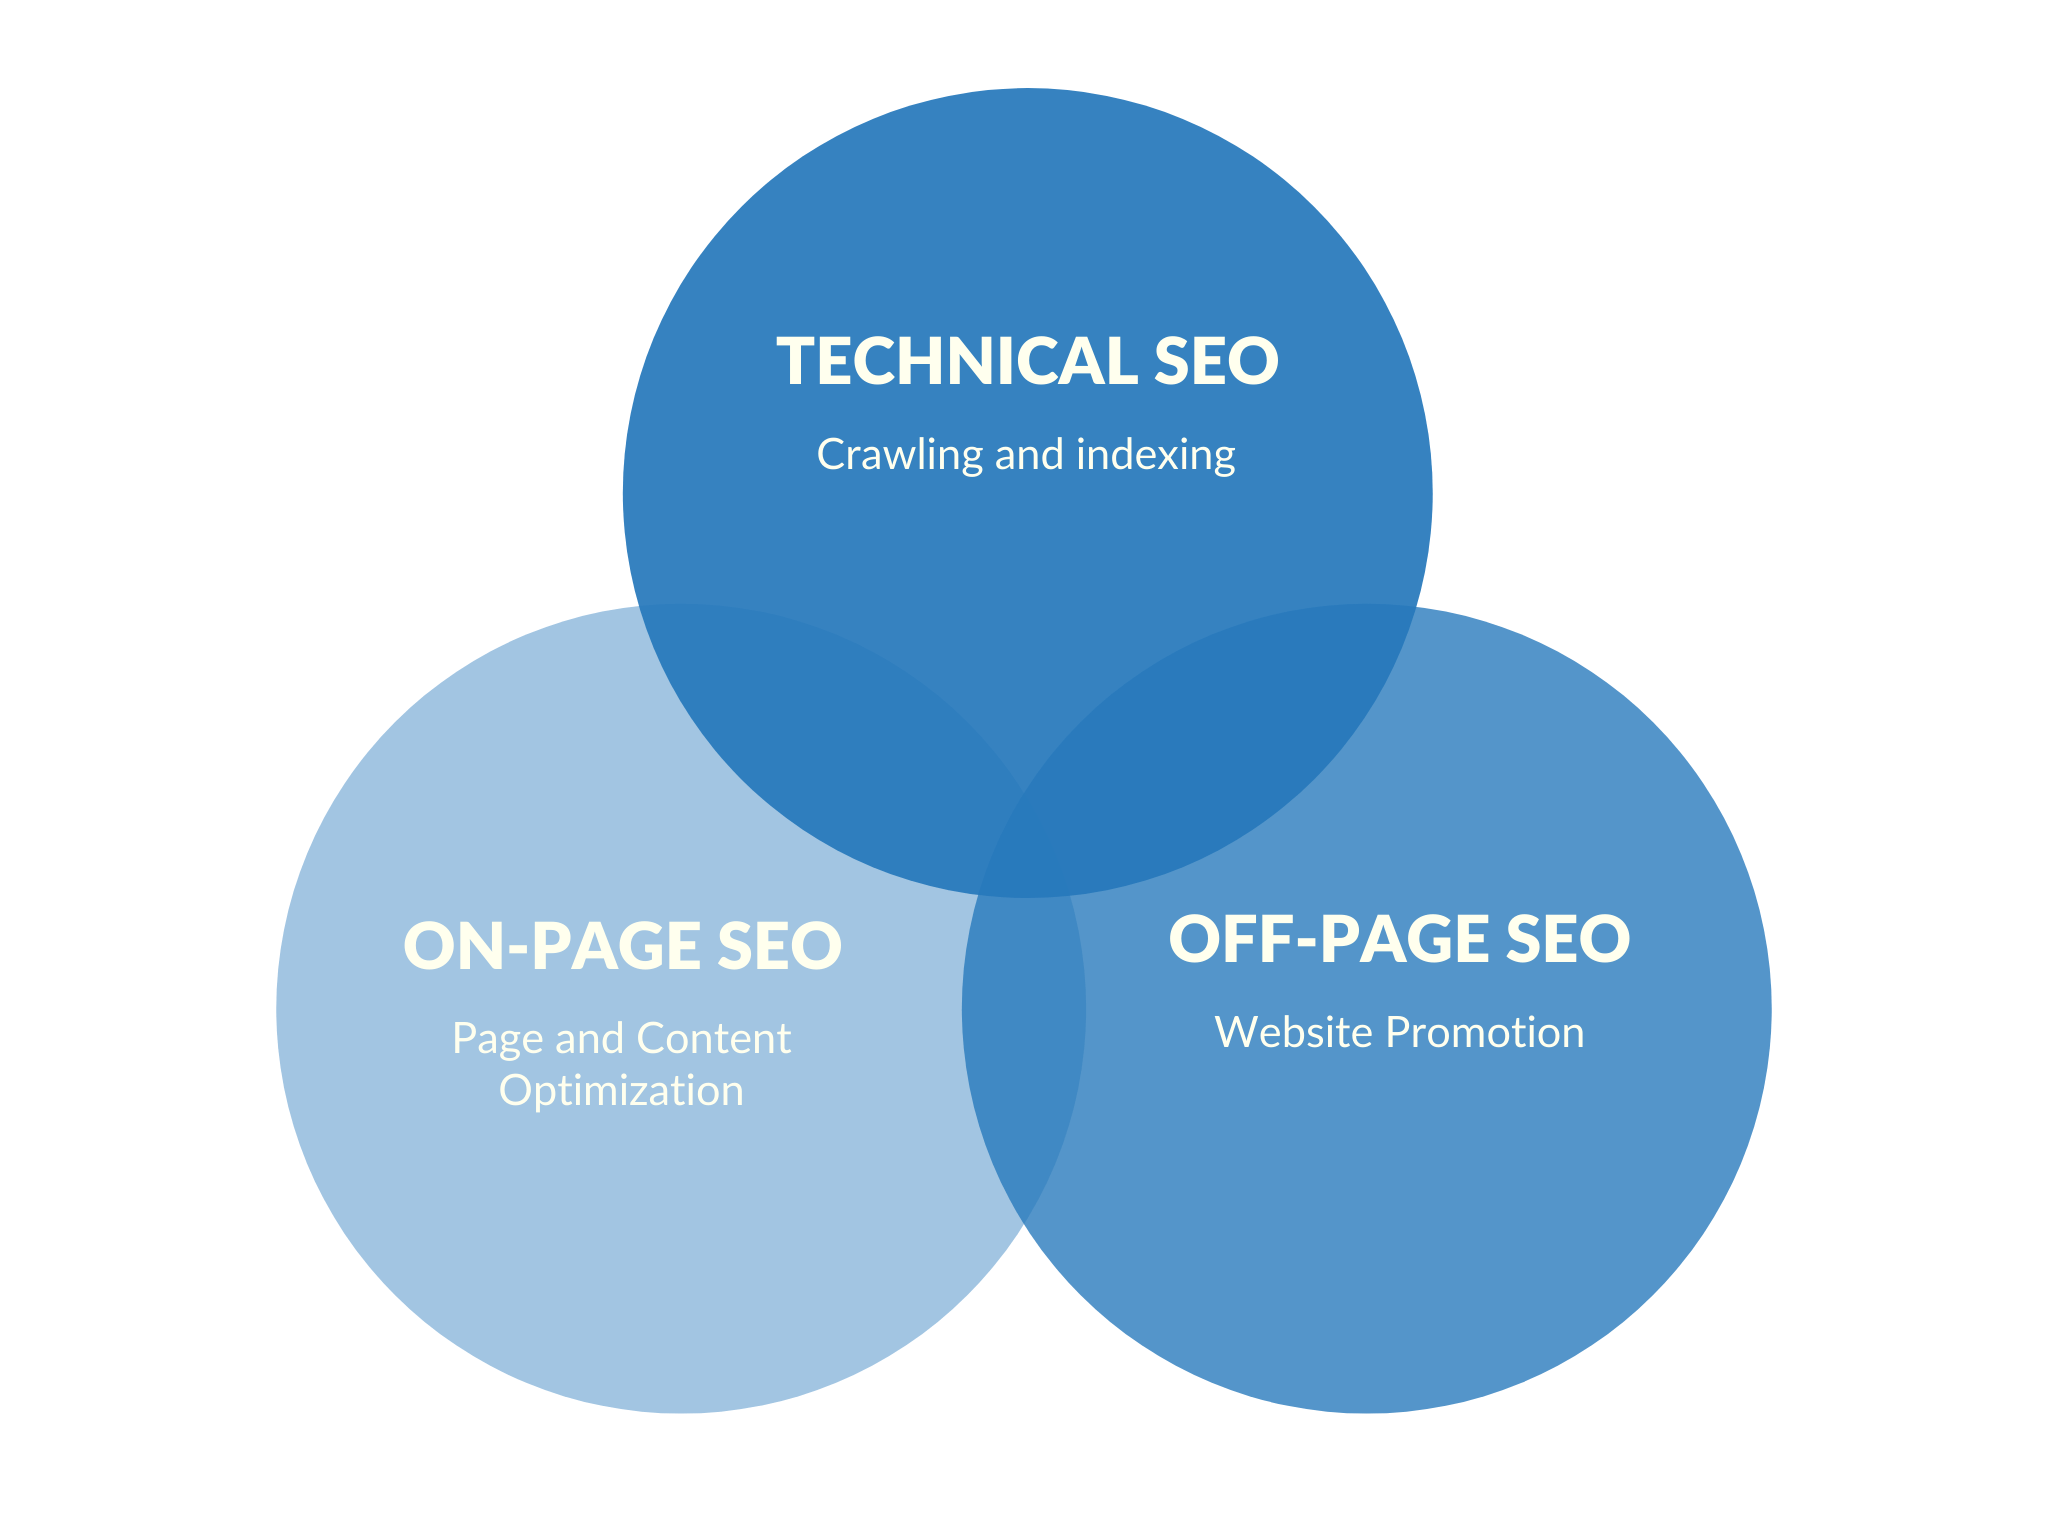 Why SEO is needed